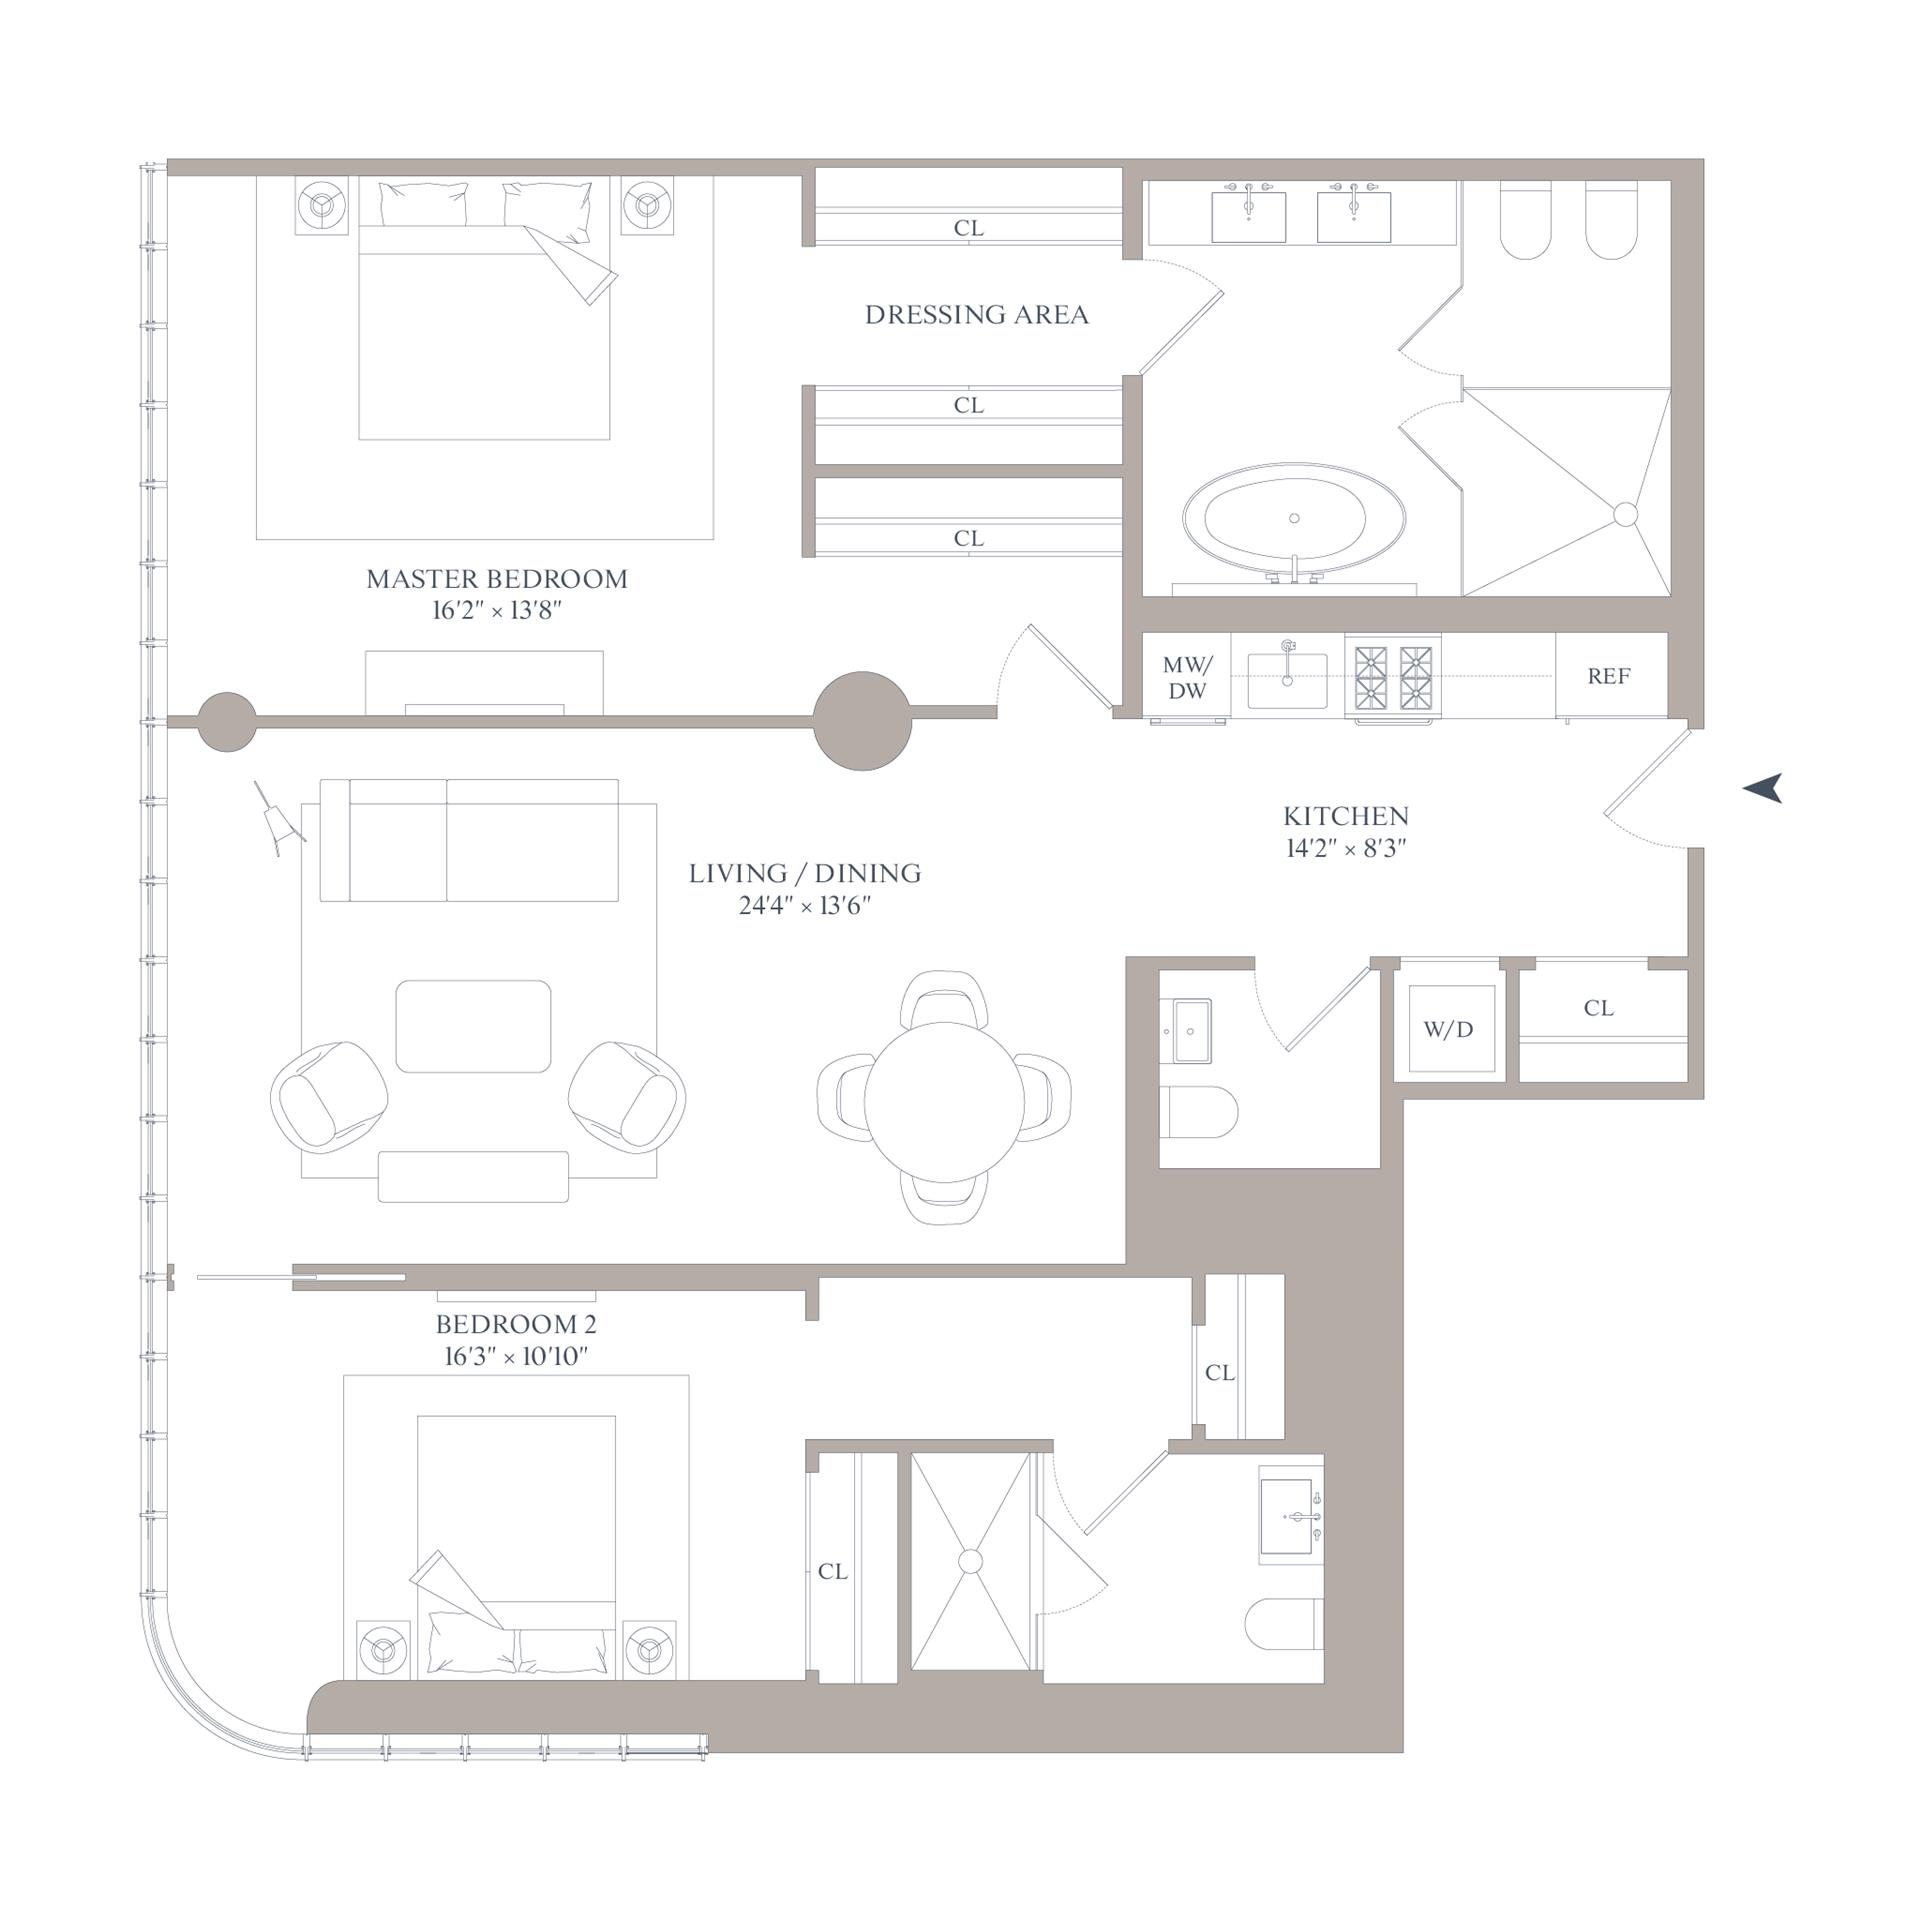 Floor plan of 565 Broome St, N12A - SoHo - Nolita, New York